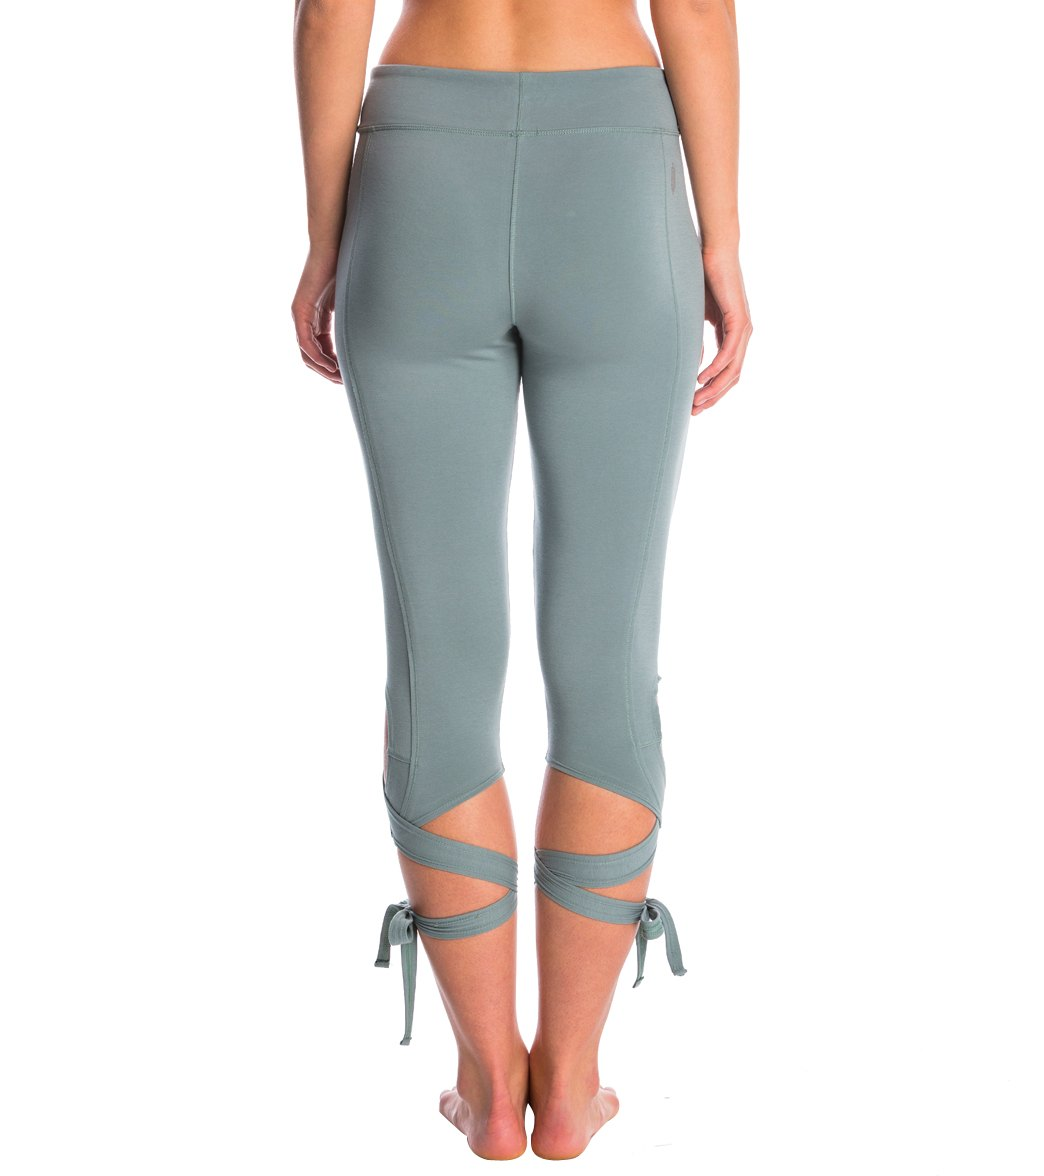 7a3b05b804c998 Free People Movement Turnout Yoga Capris at YogaOutlet.com - Free Shipping